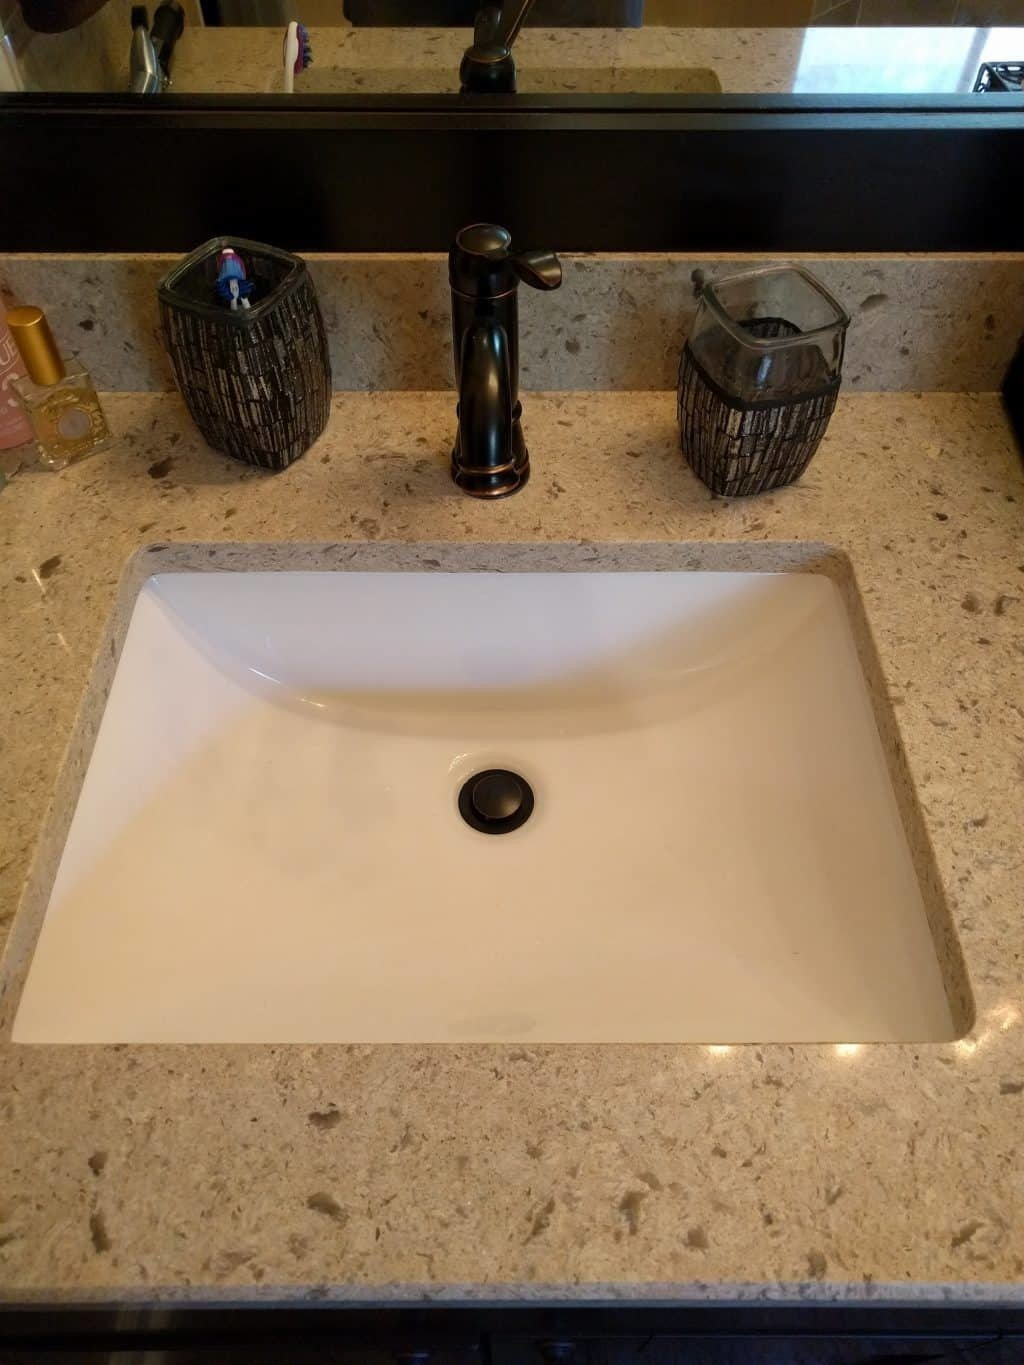 Painting kitchen cabinets remodeling tallahassee mcmanus kitchen - Quartz Top With Undermount Sink Delta Faucet